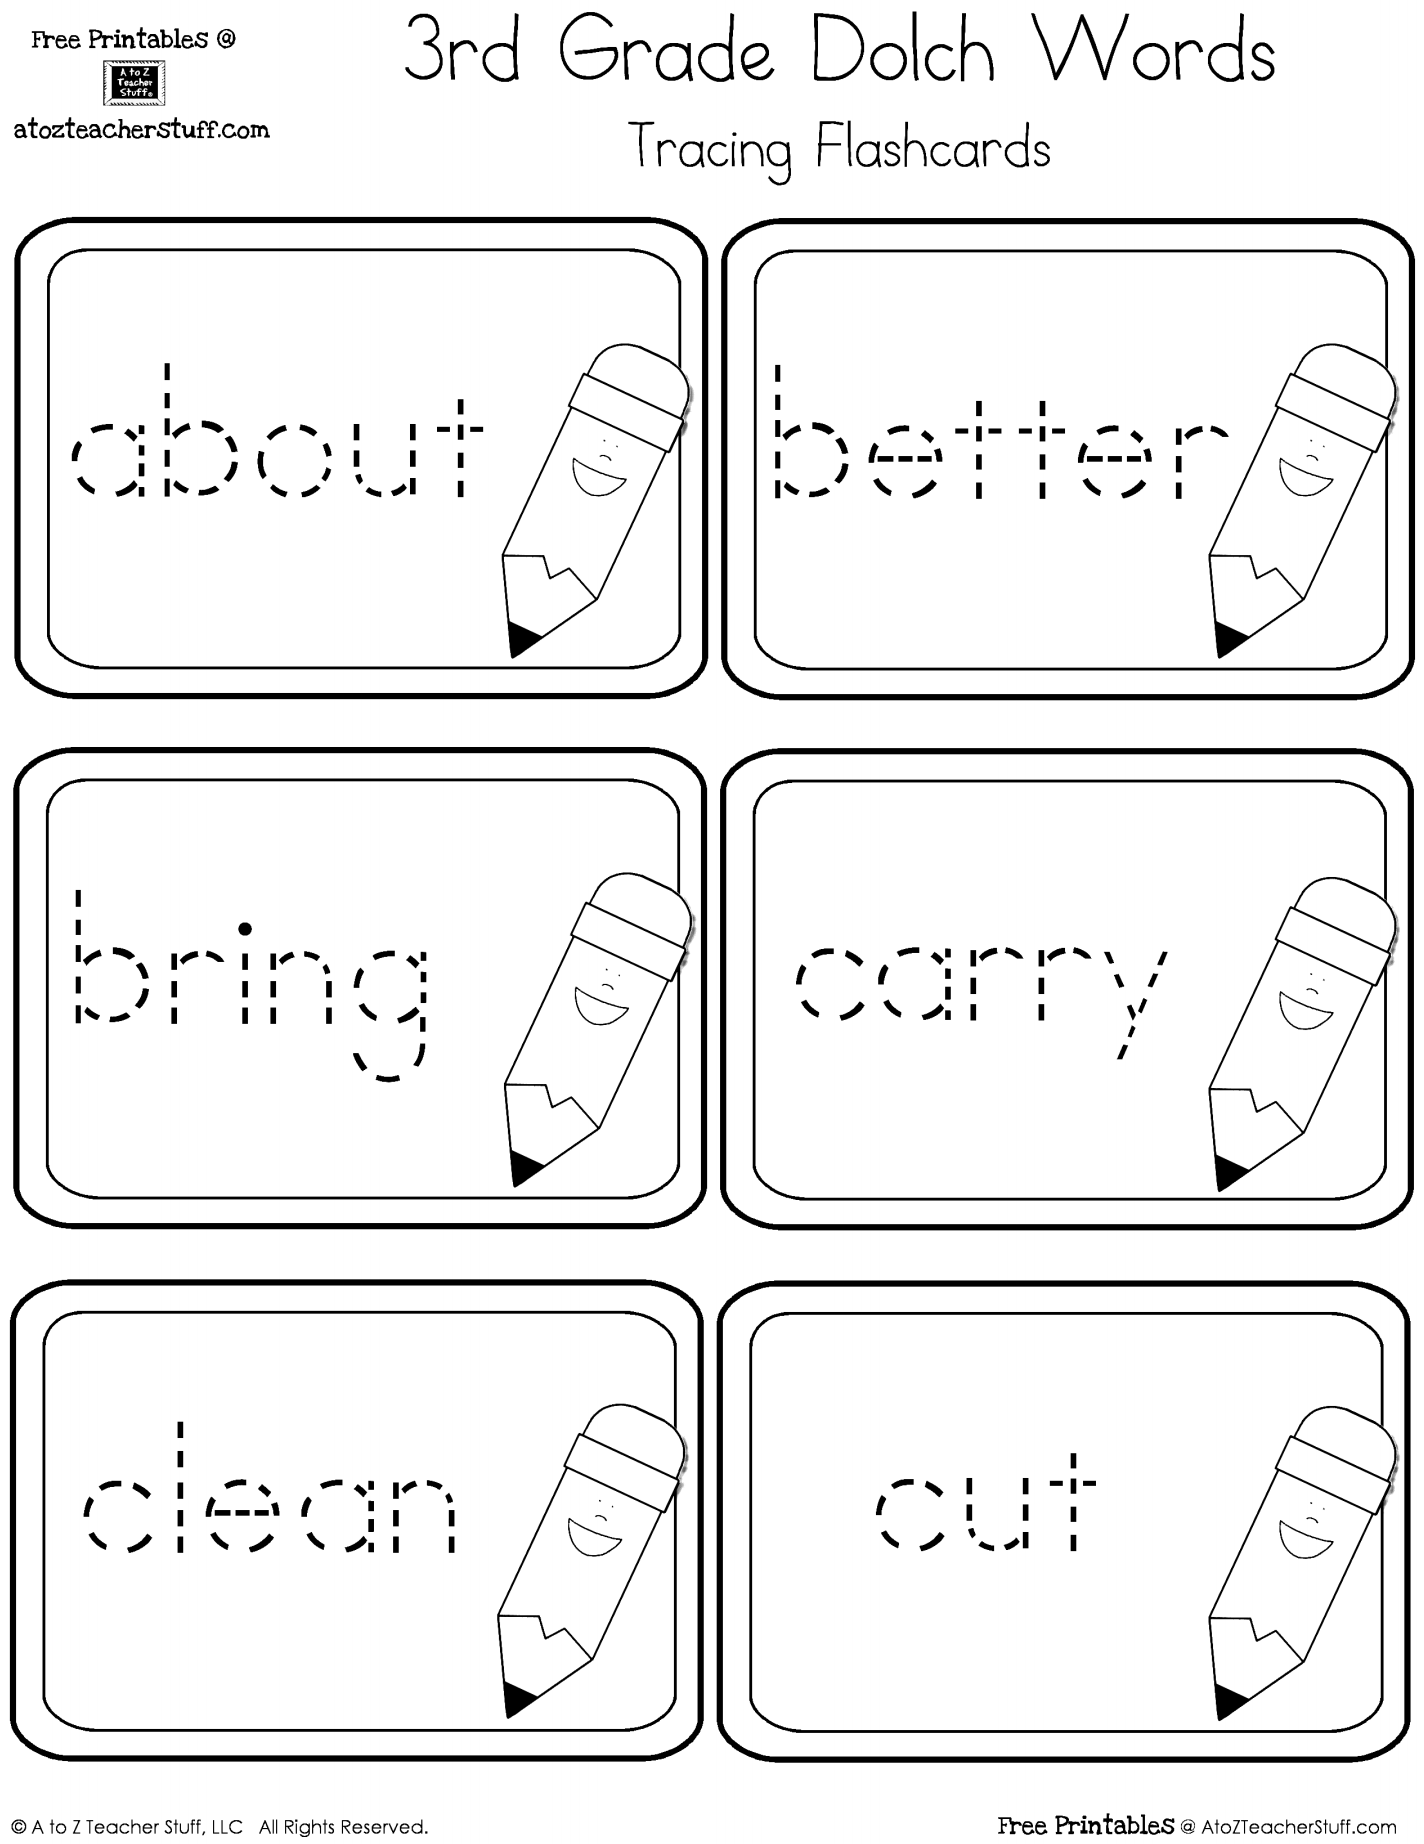 Printables 3rd Grade Sight Words Worksheets third grade dolch sight words tracing flashcards a to z teacher 3rd cards free printables